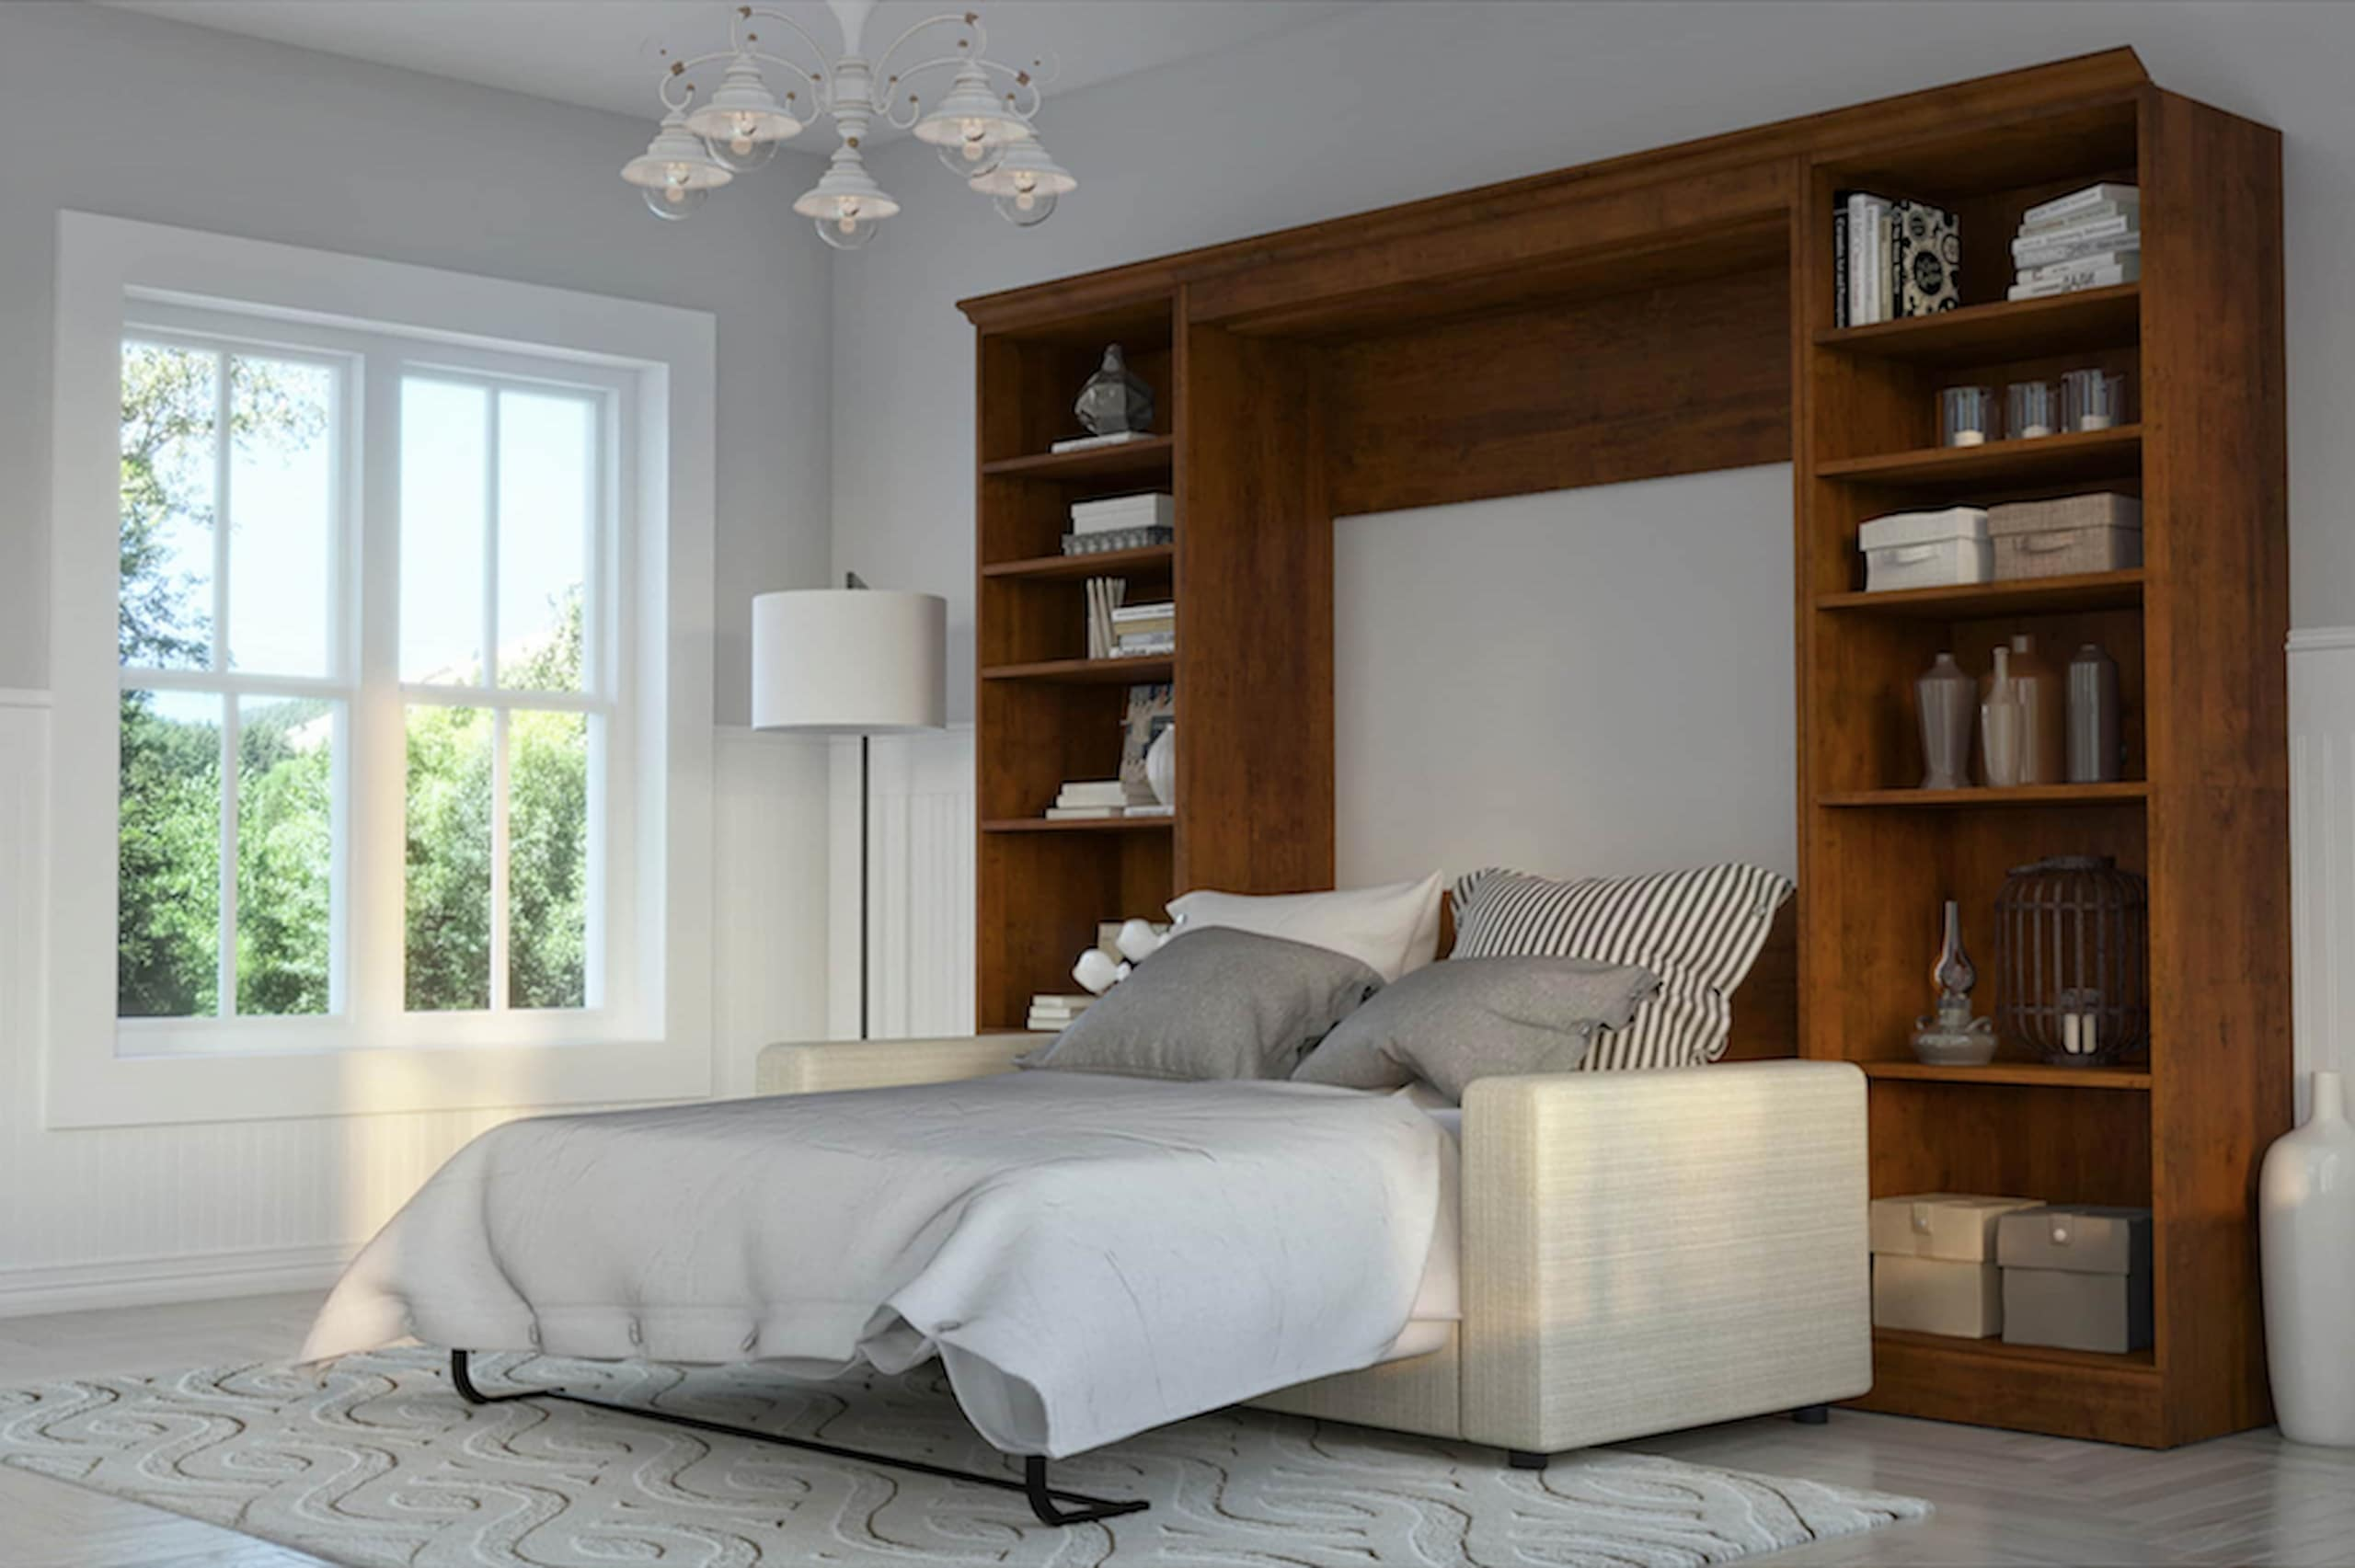 Looking for the Perfect Solution for Your Small Space? Try a Murphy Bed with Bookshelf!